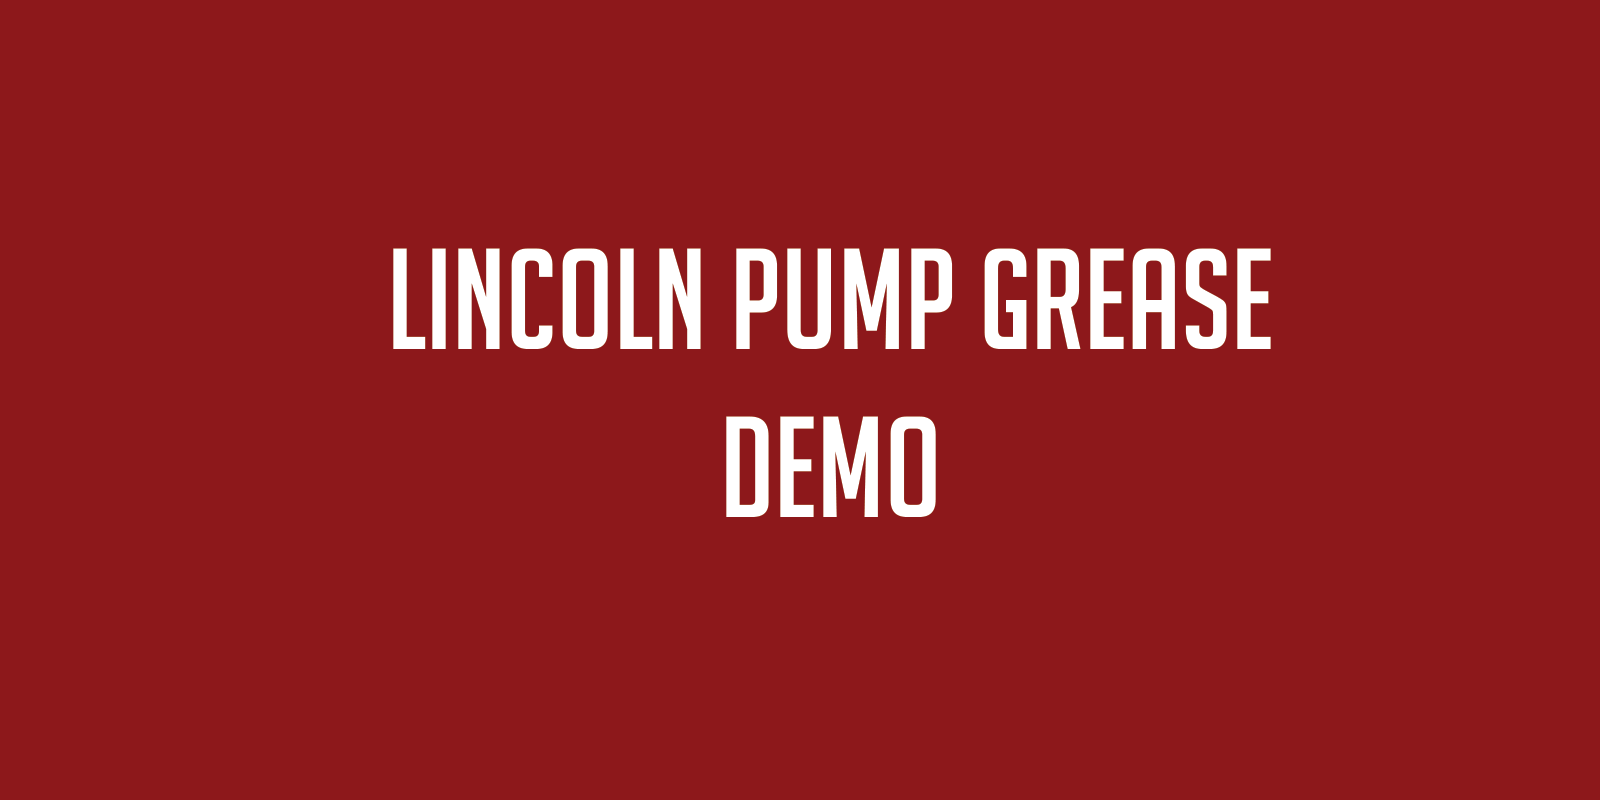 Lincoln Pump Grease